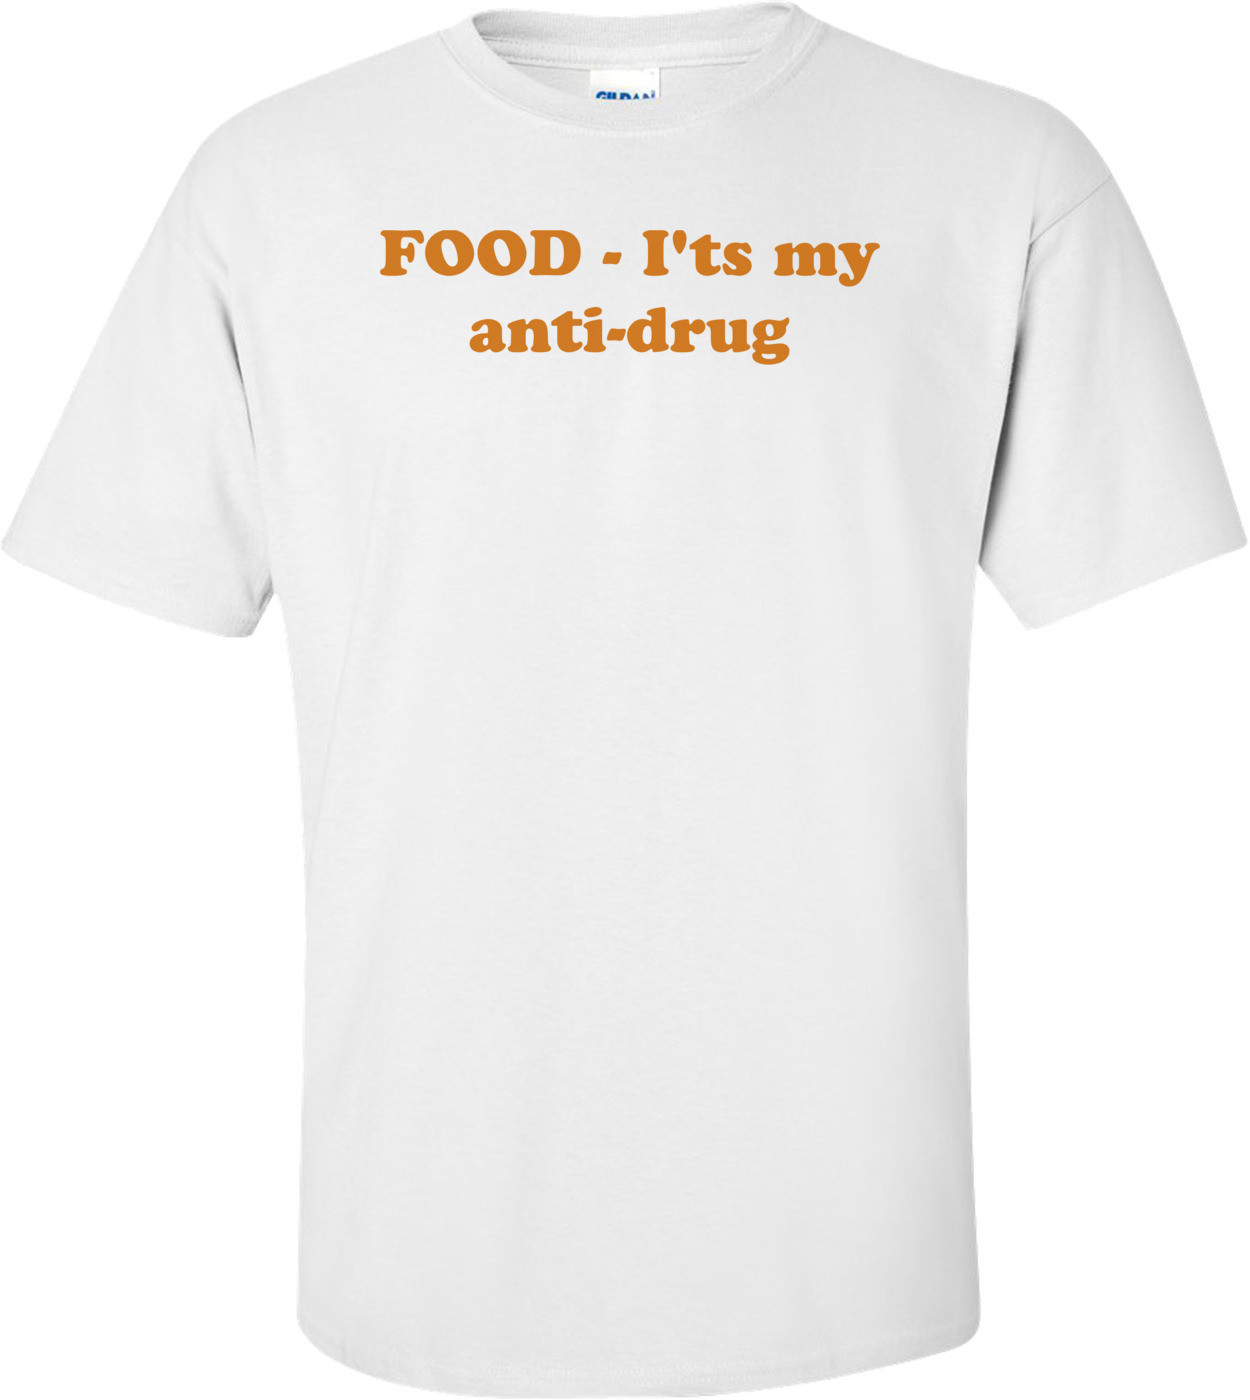 FOOD - I'ts my anti-drug Shirt